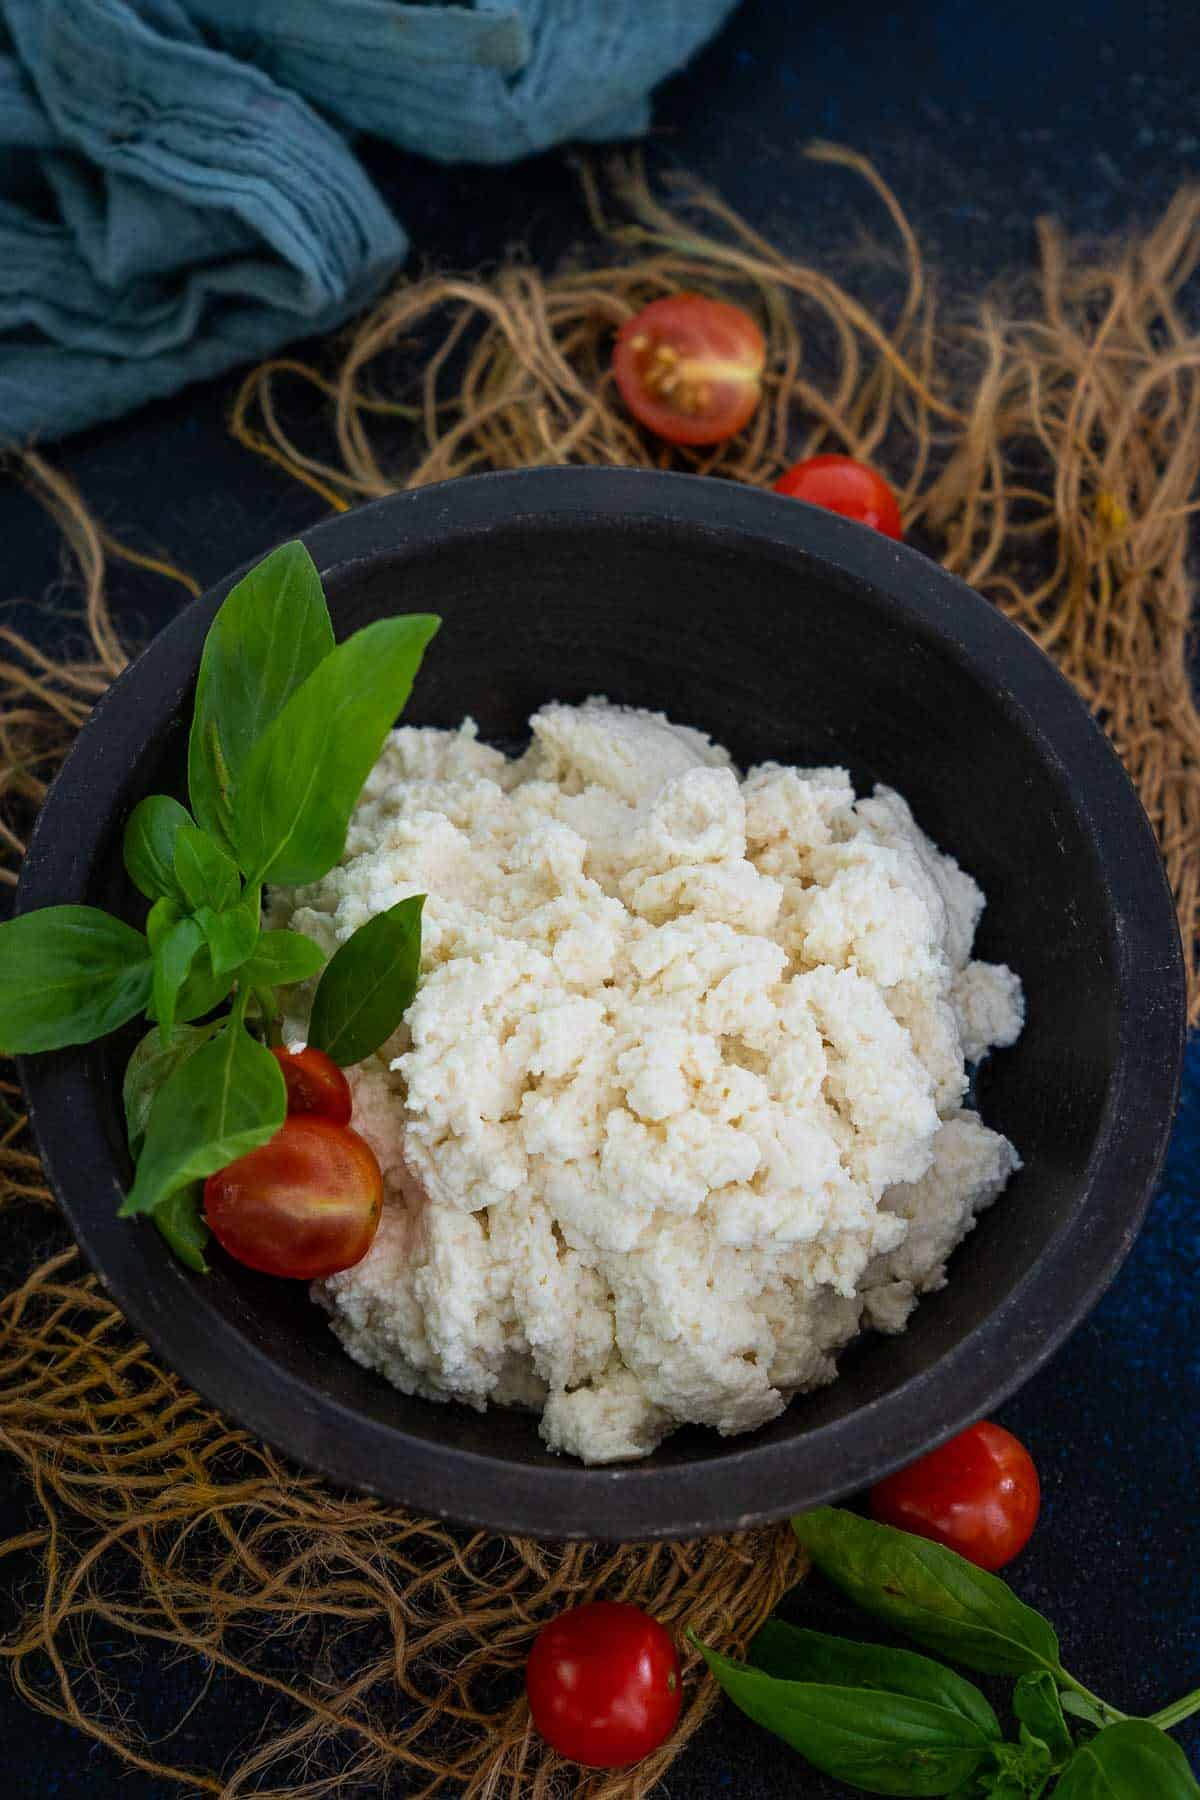 Homemade ricotta cheese served in a bowl.